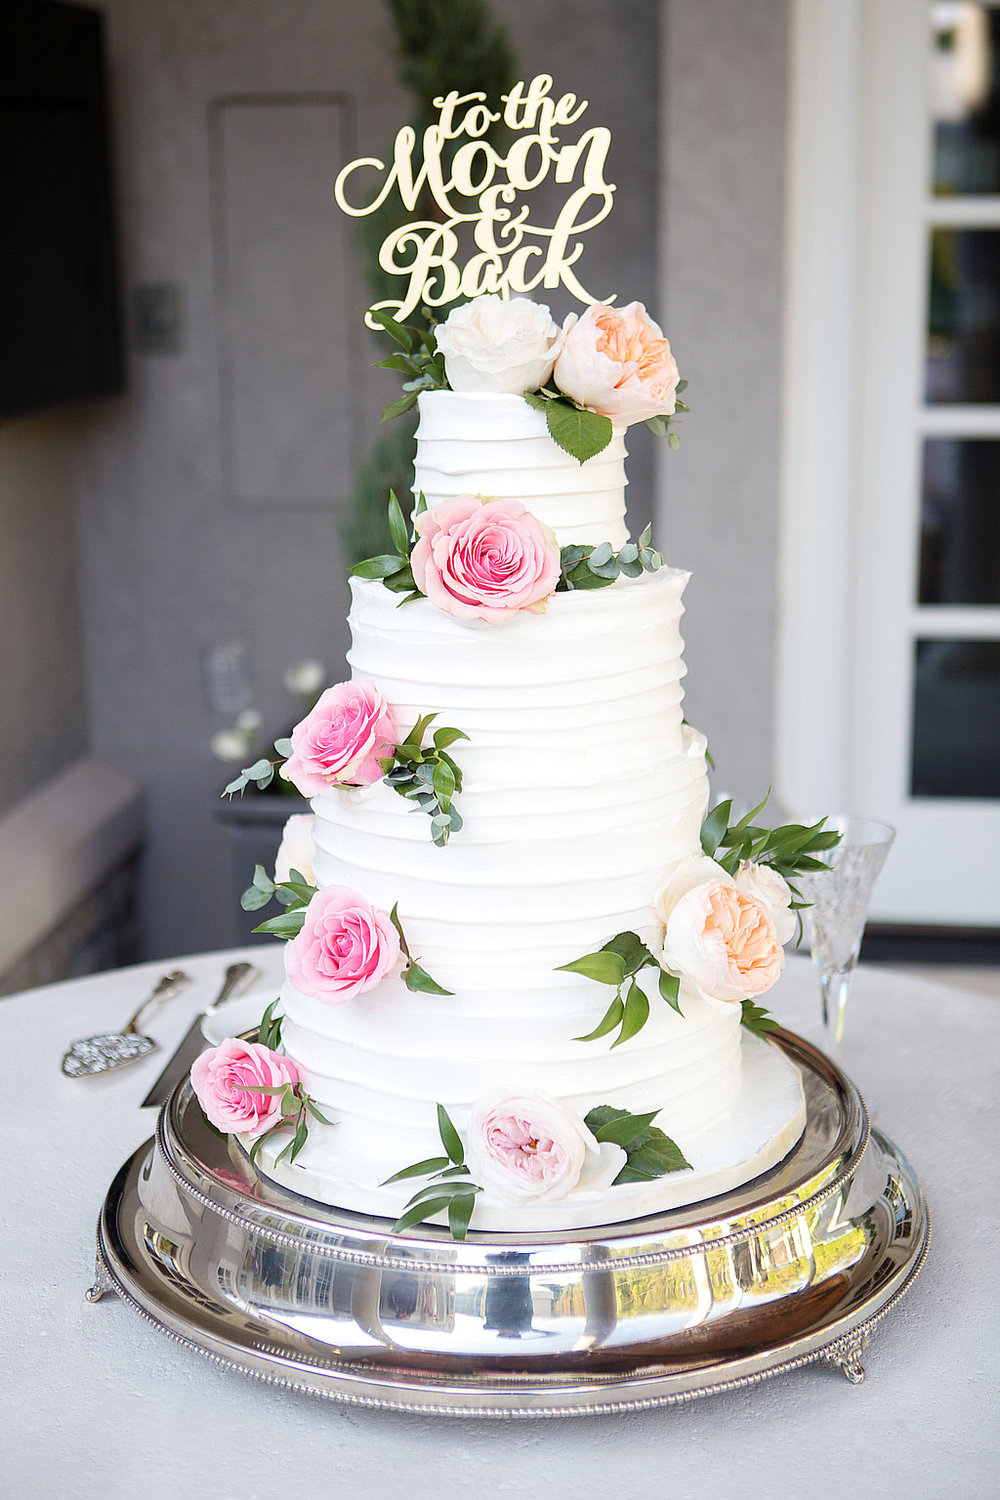 best nashville wedding cake nashville.jpg